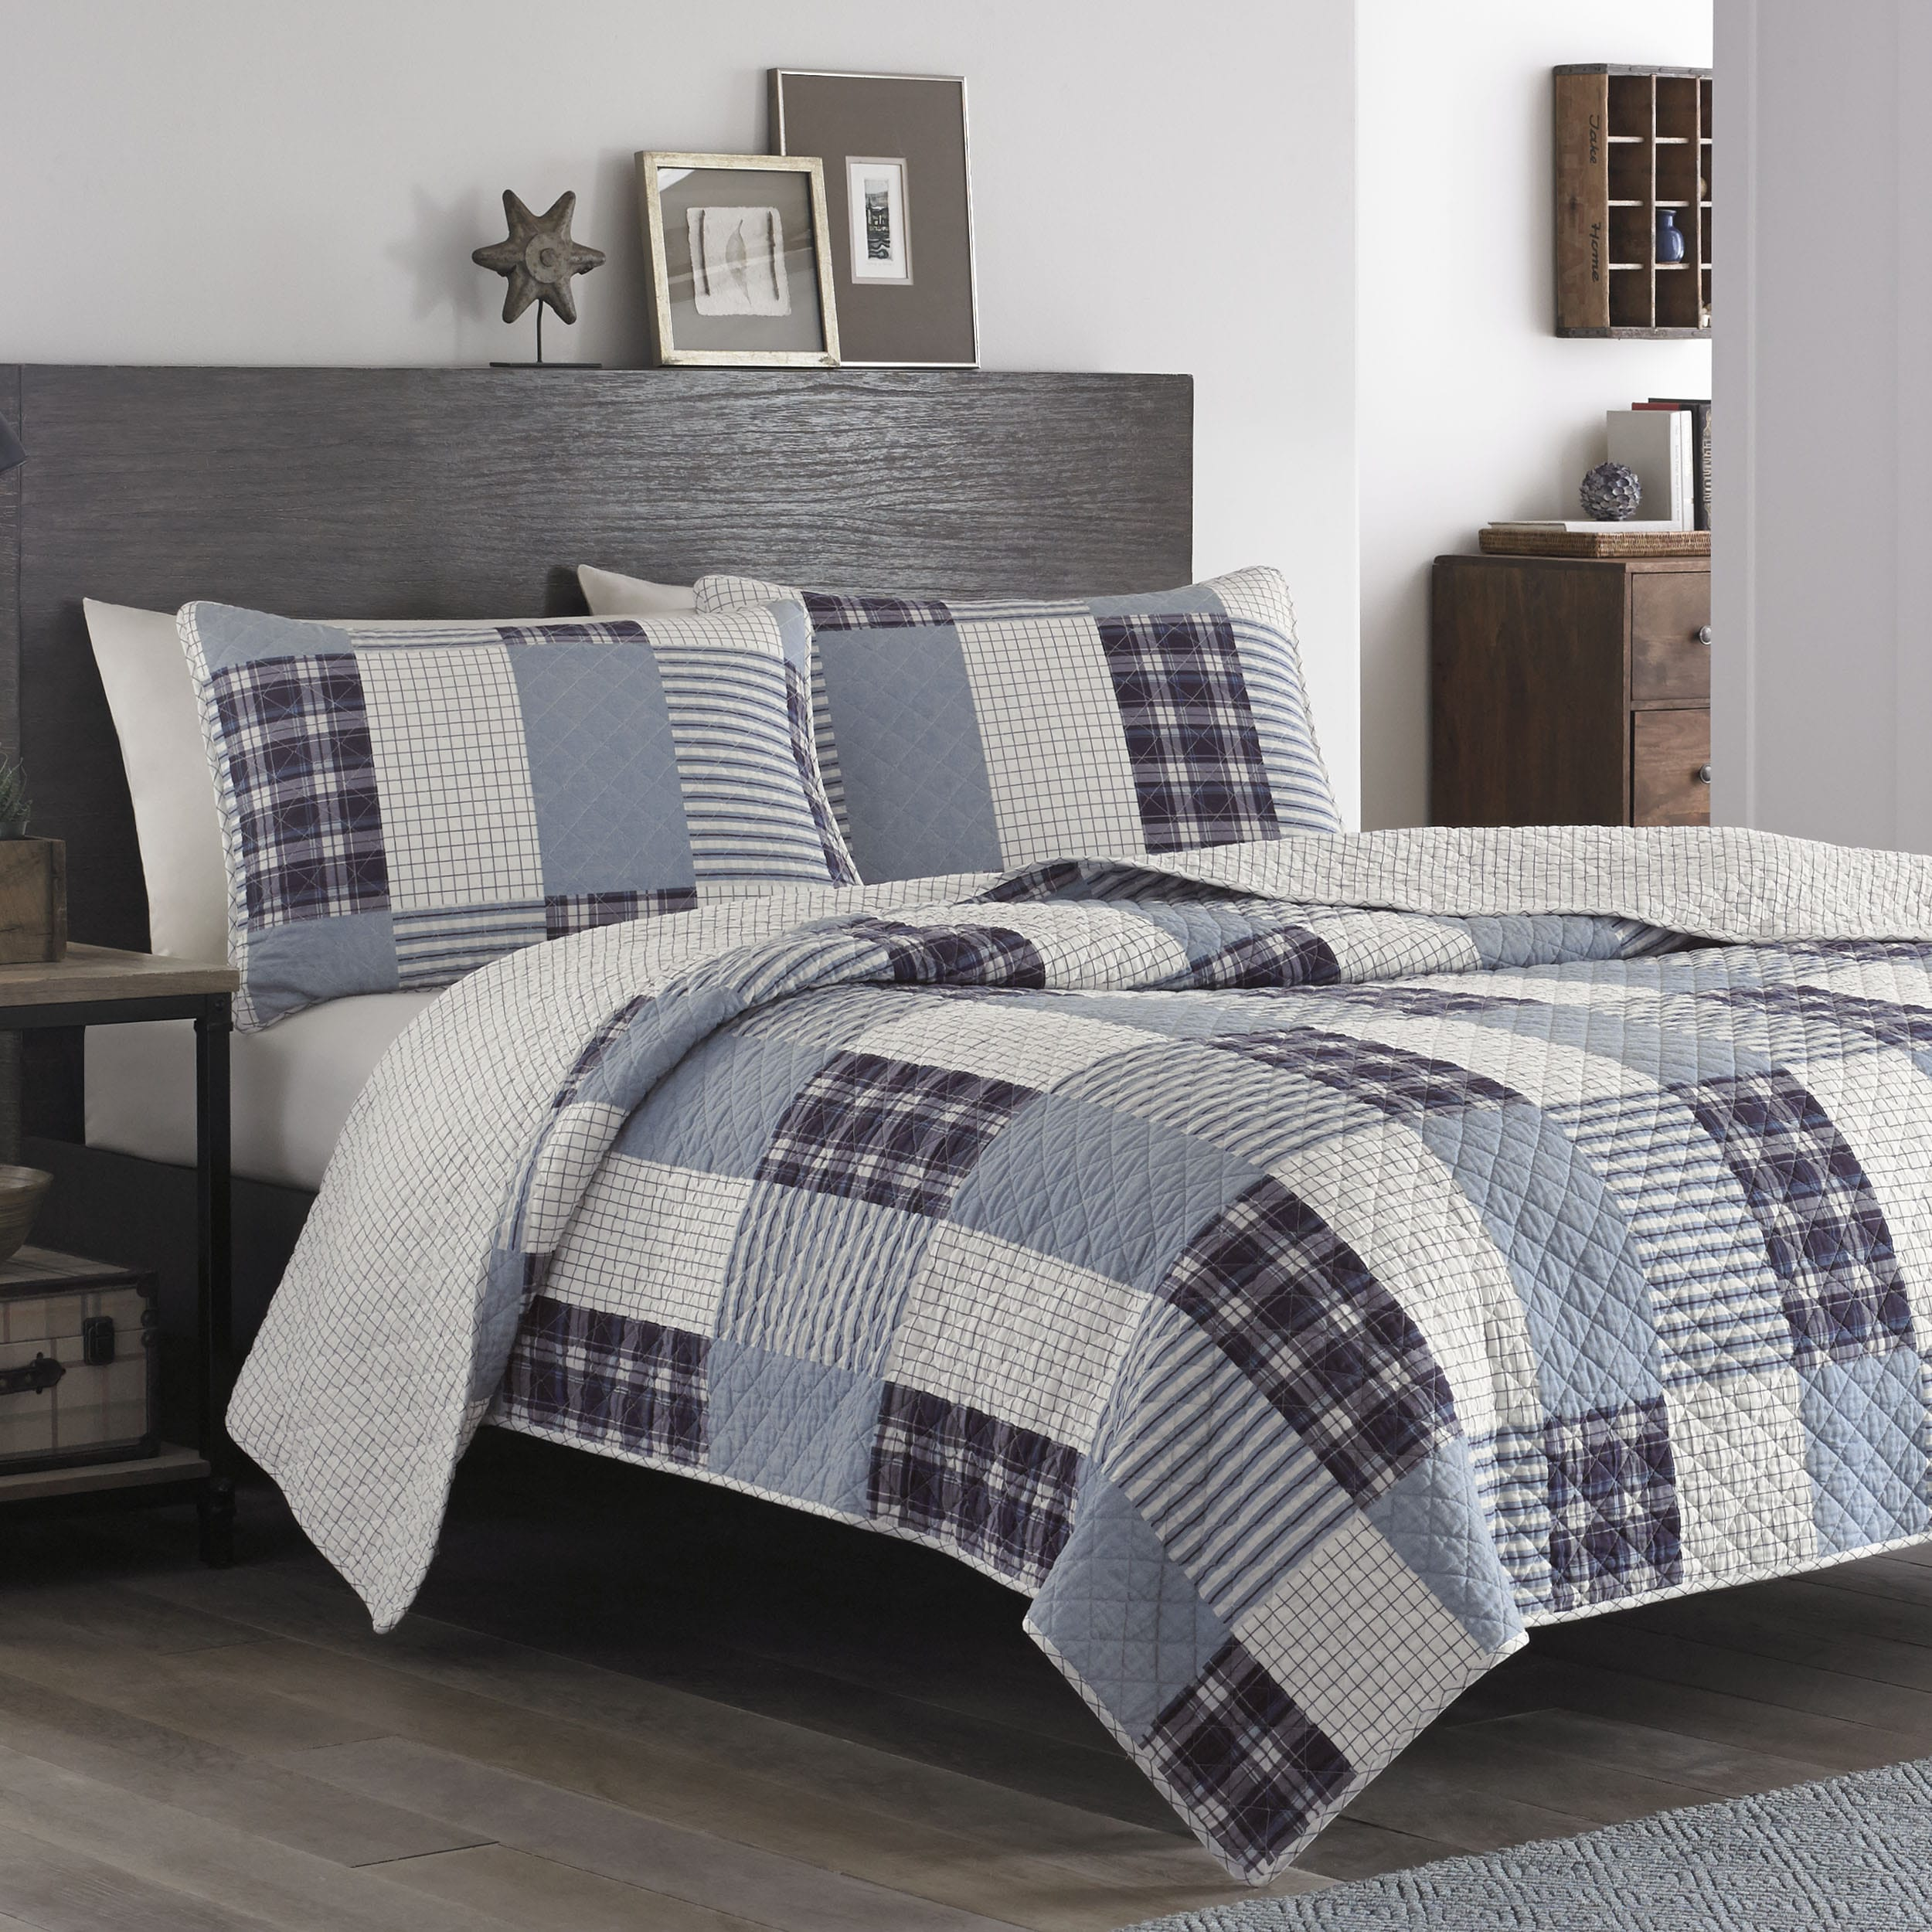 coverlet plum bedroom quilts turquoise sets quilt coverlets and lavender bedding grey full of size king comforter bedspread twin queen purple